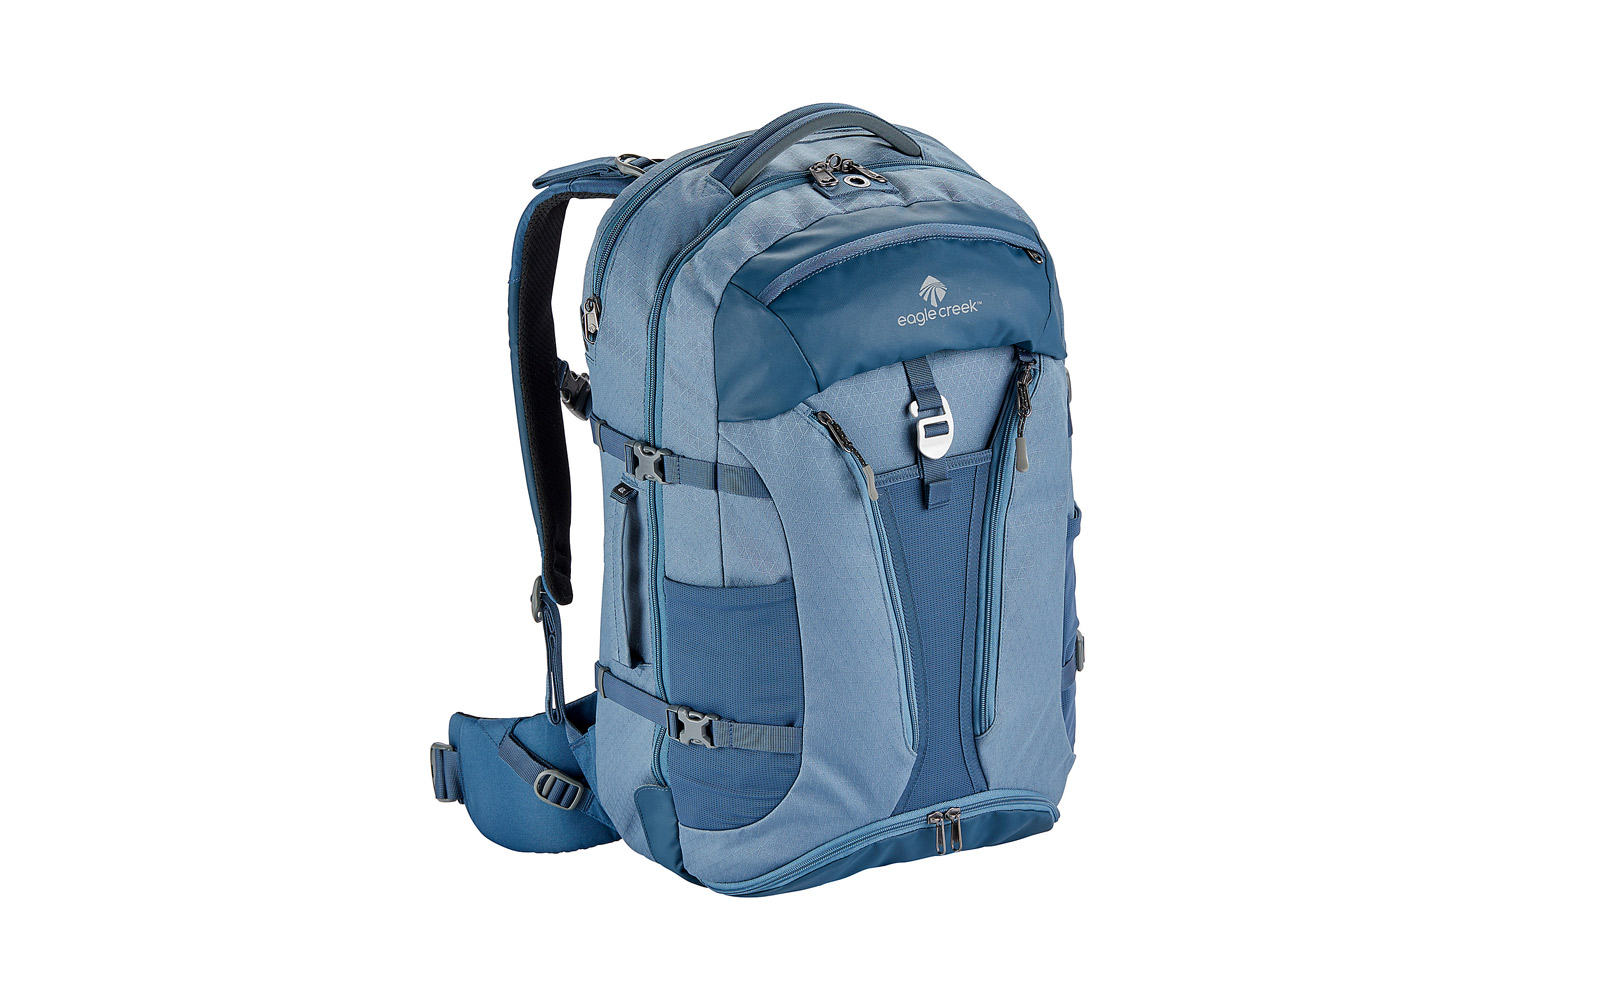 The Best Carry-on Travel Backpacks for 2019   Travel + Leisure 127a2ddf0b